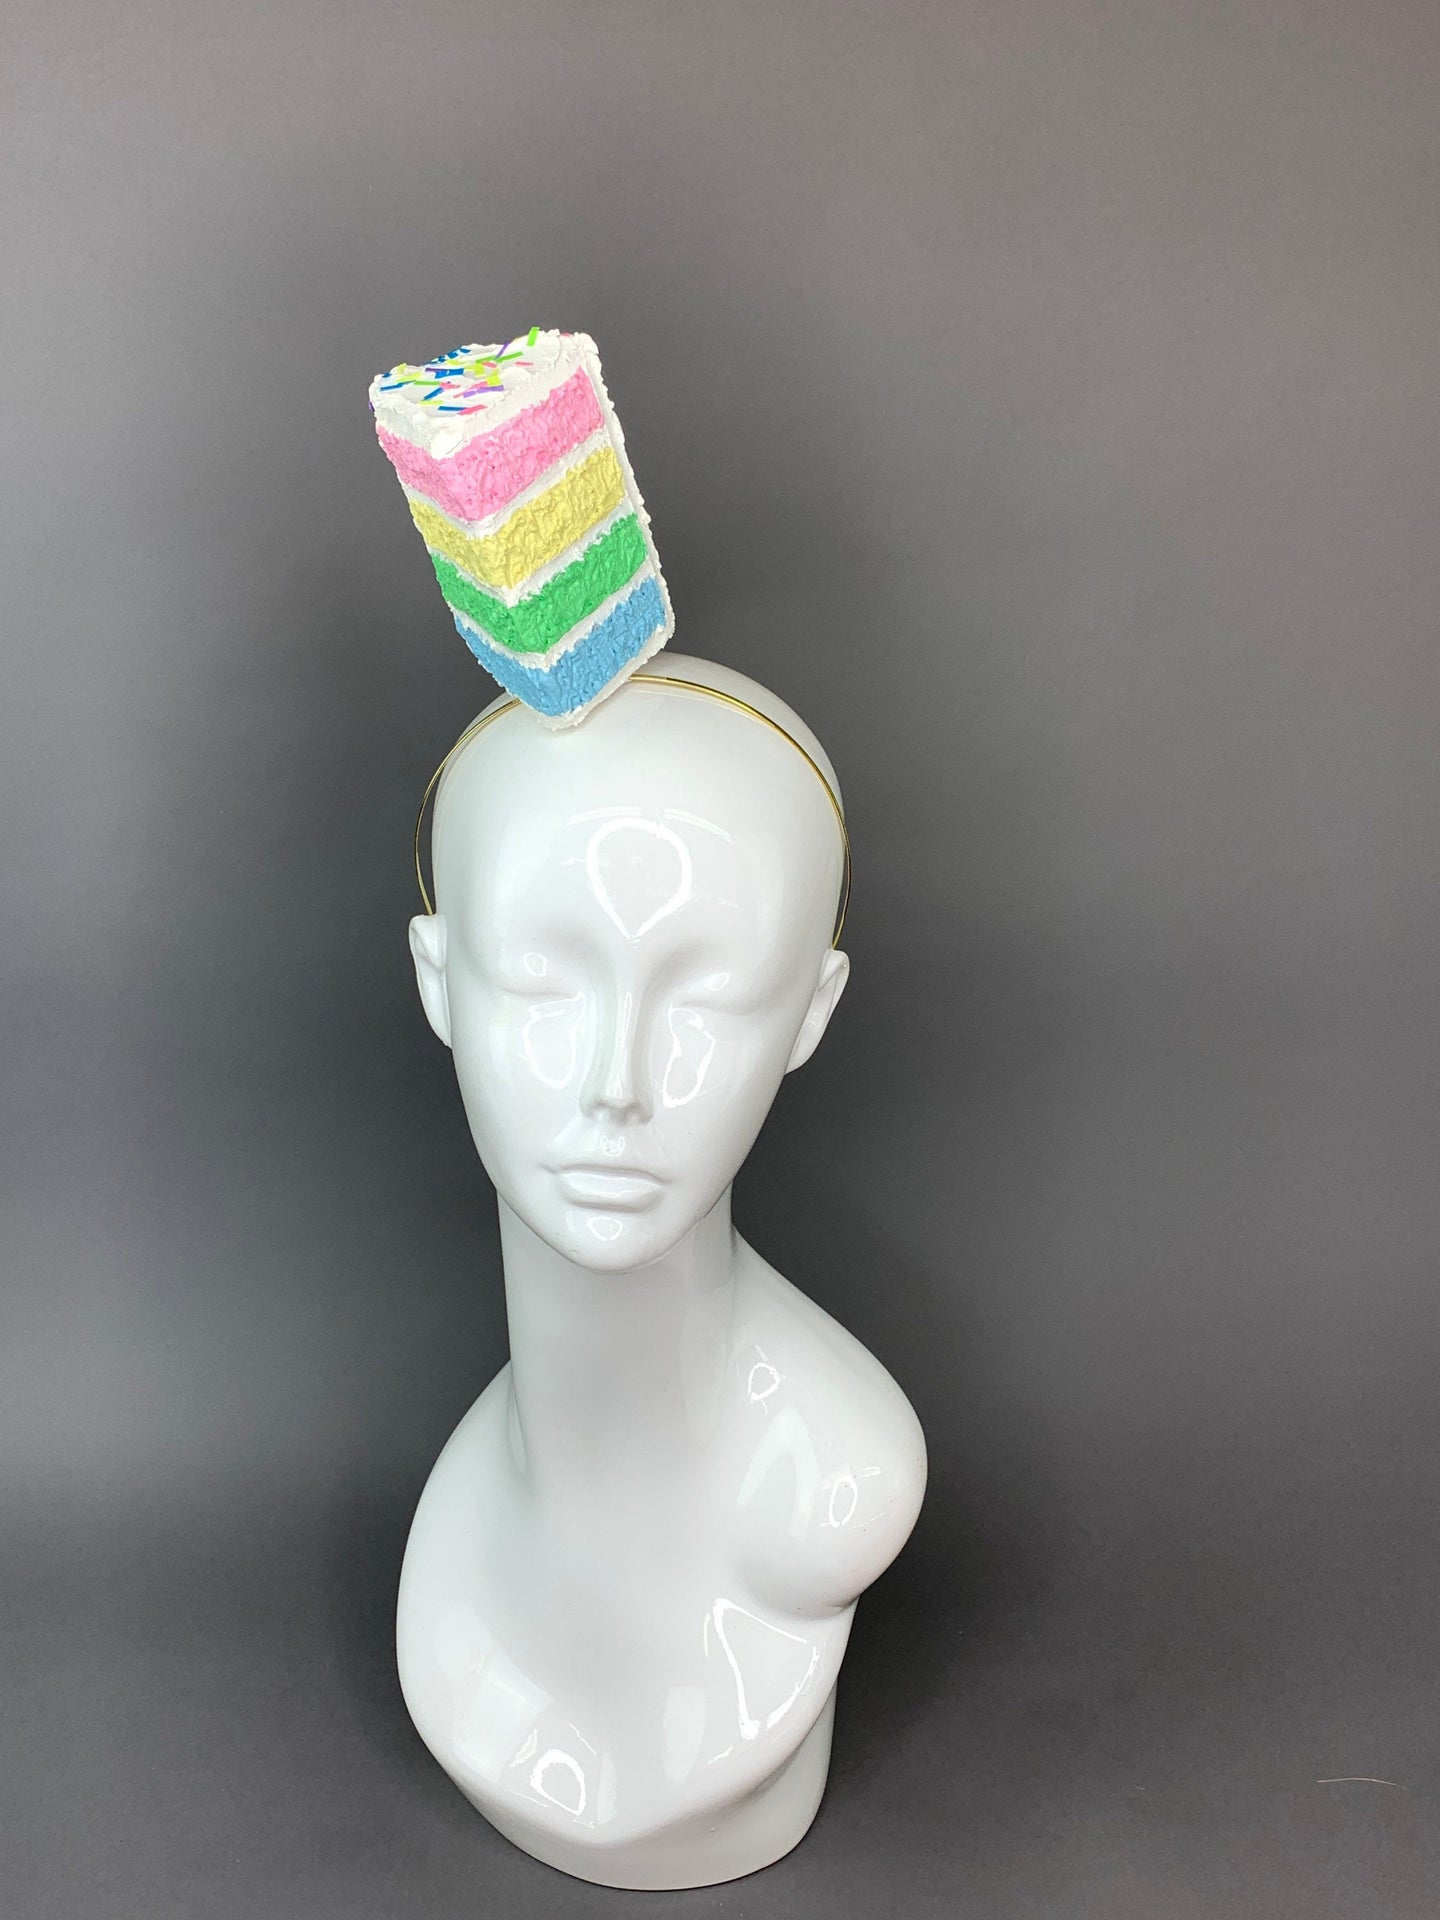 Birthday Fascinator, Birthday Derby Hat, Church Hat, Kentucky Derby Hat, Fancy Hat, Pink Hat, Tea Party Hat, wedding hat, British Hat